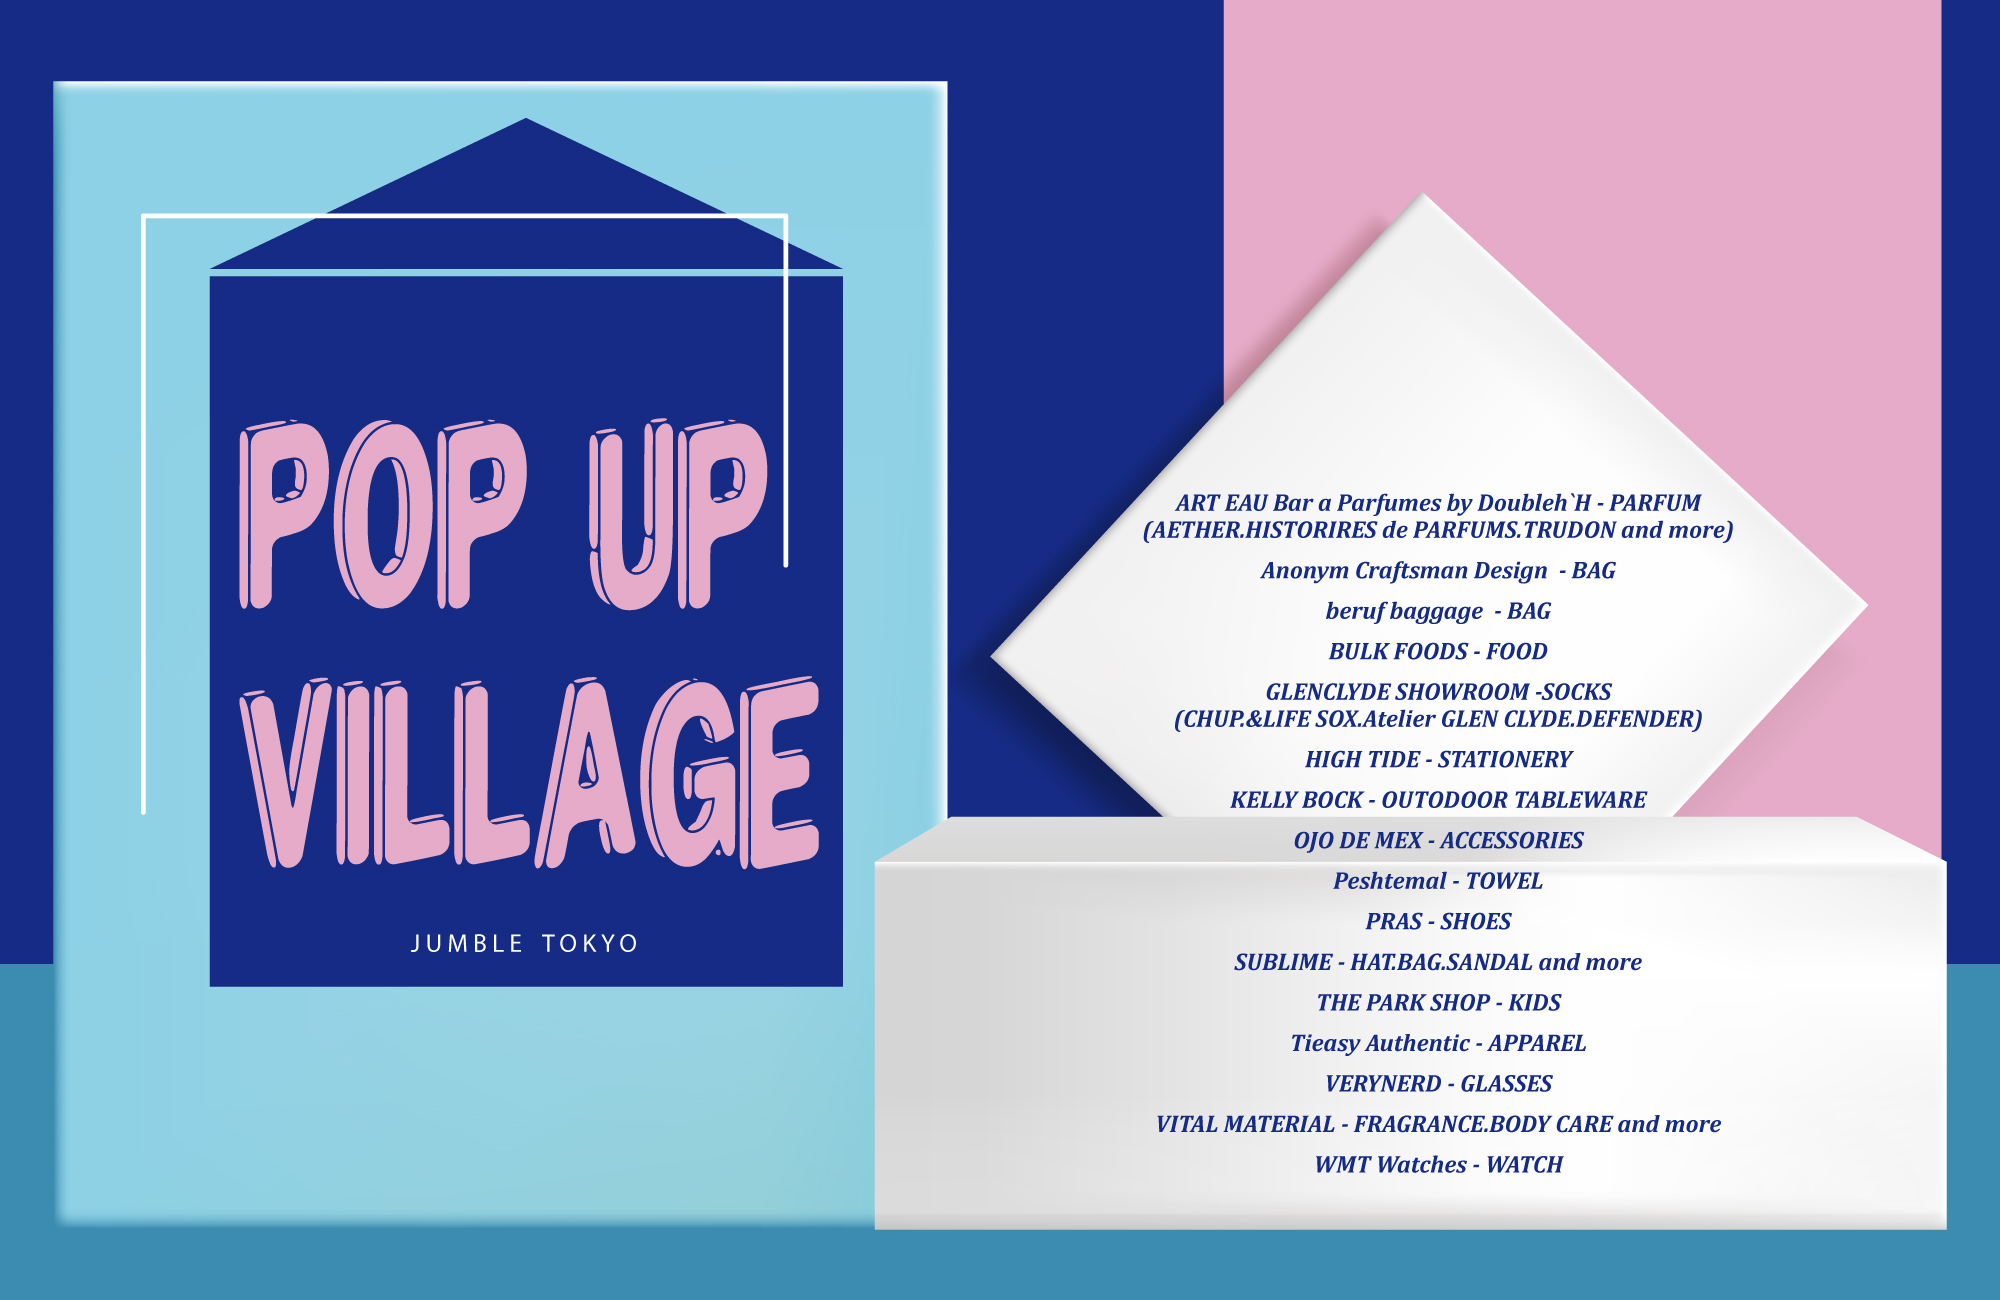 POP UP VILLAGE